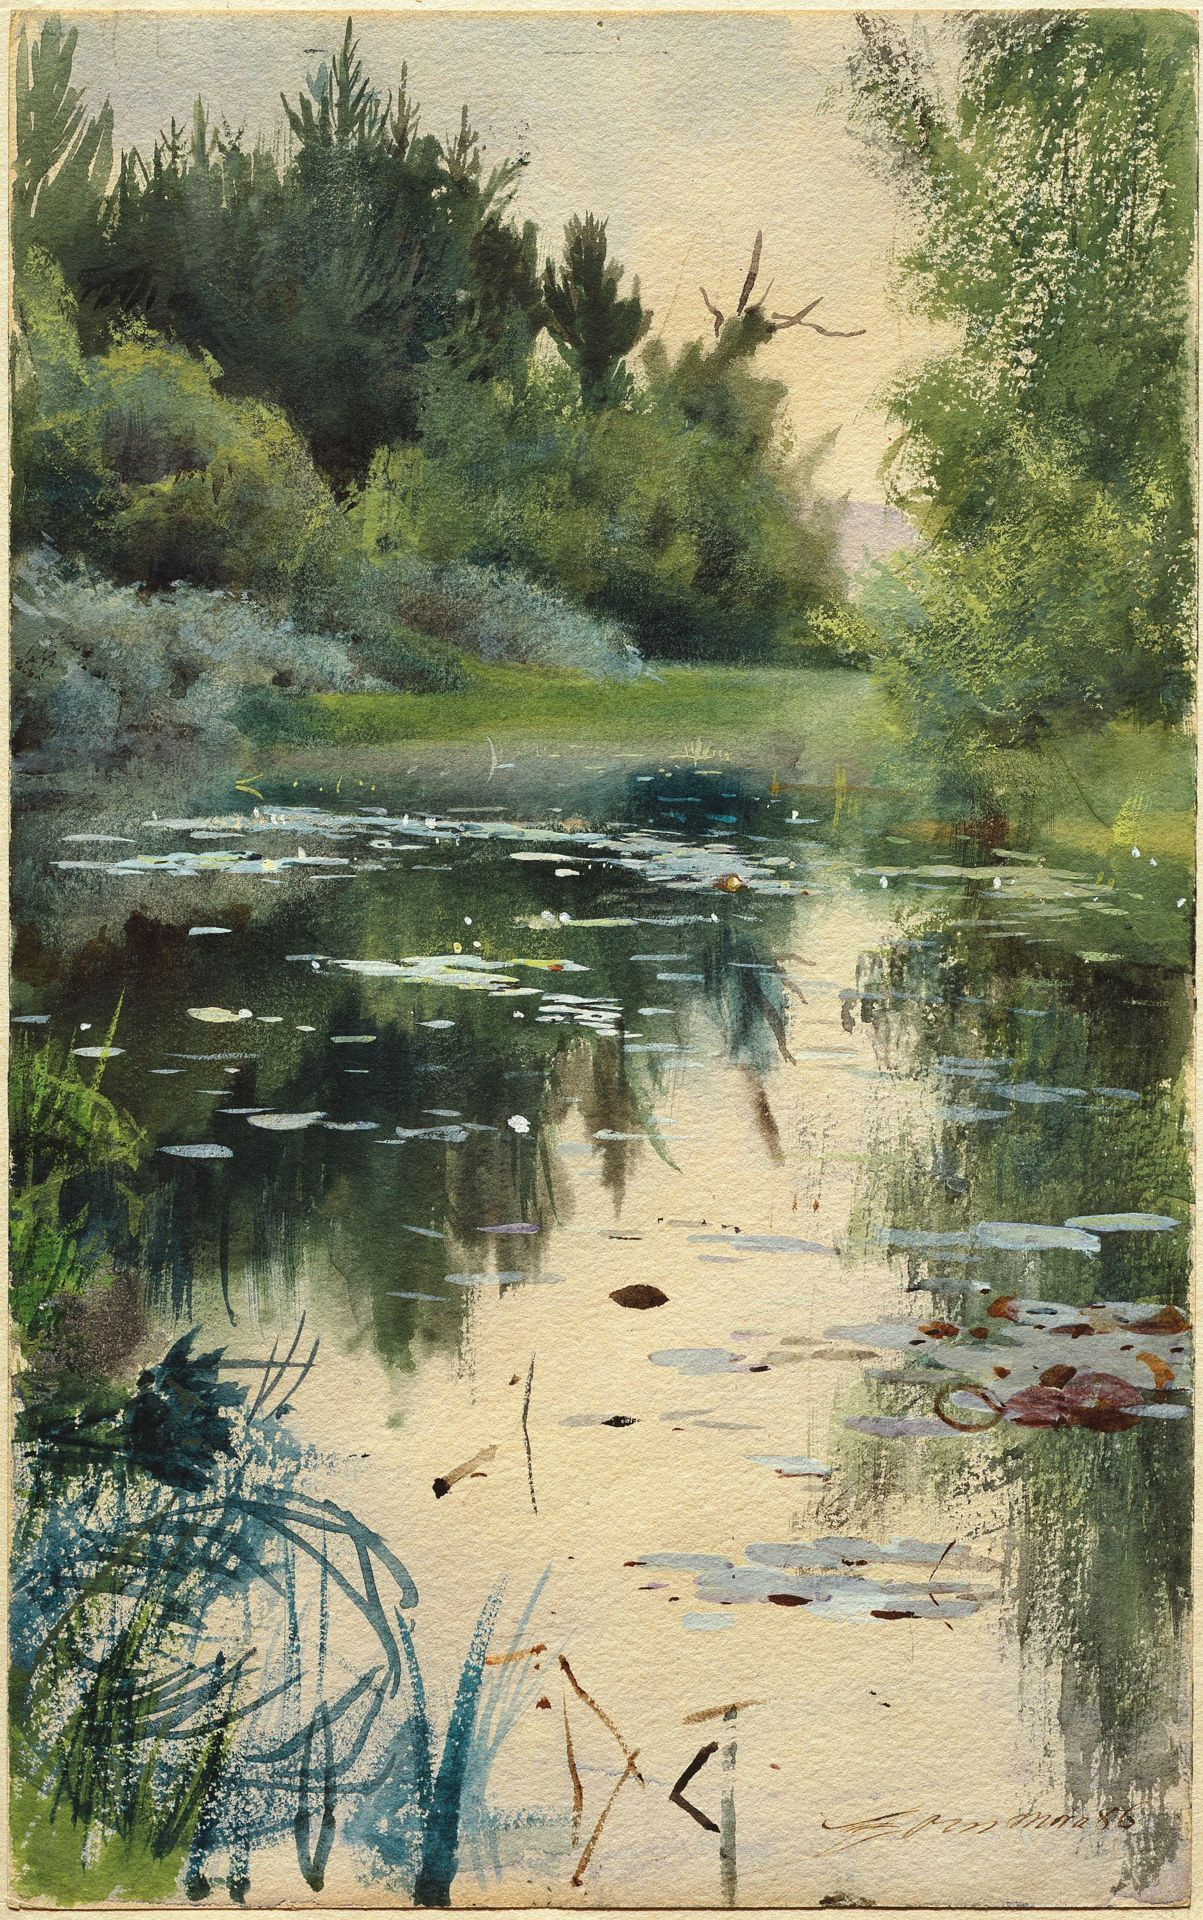 Pin By Anna L Conti On Other Works On Paper Landscape Paintings Landscape Art Watercolor Landscape